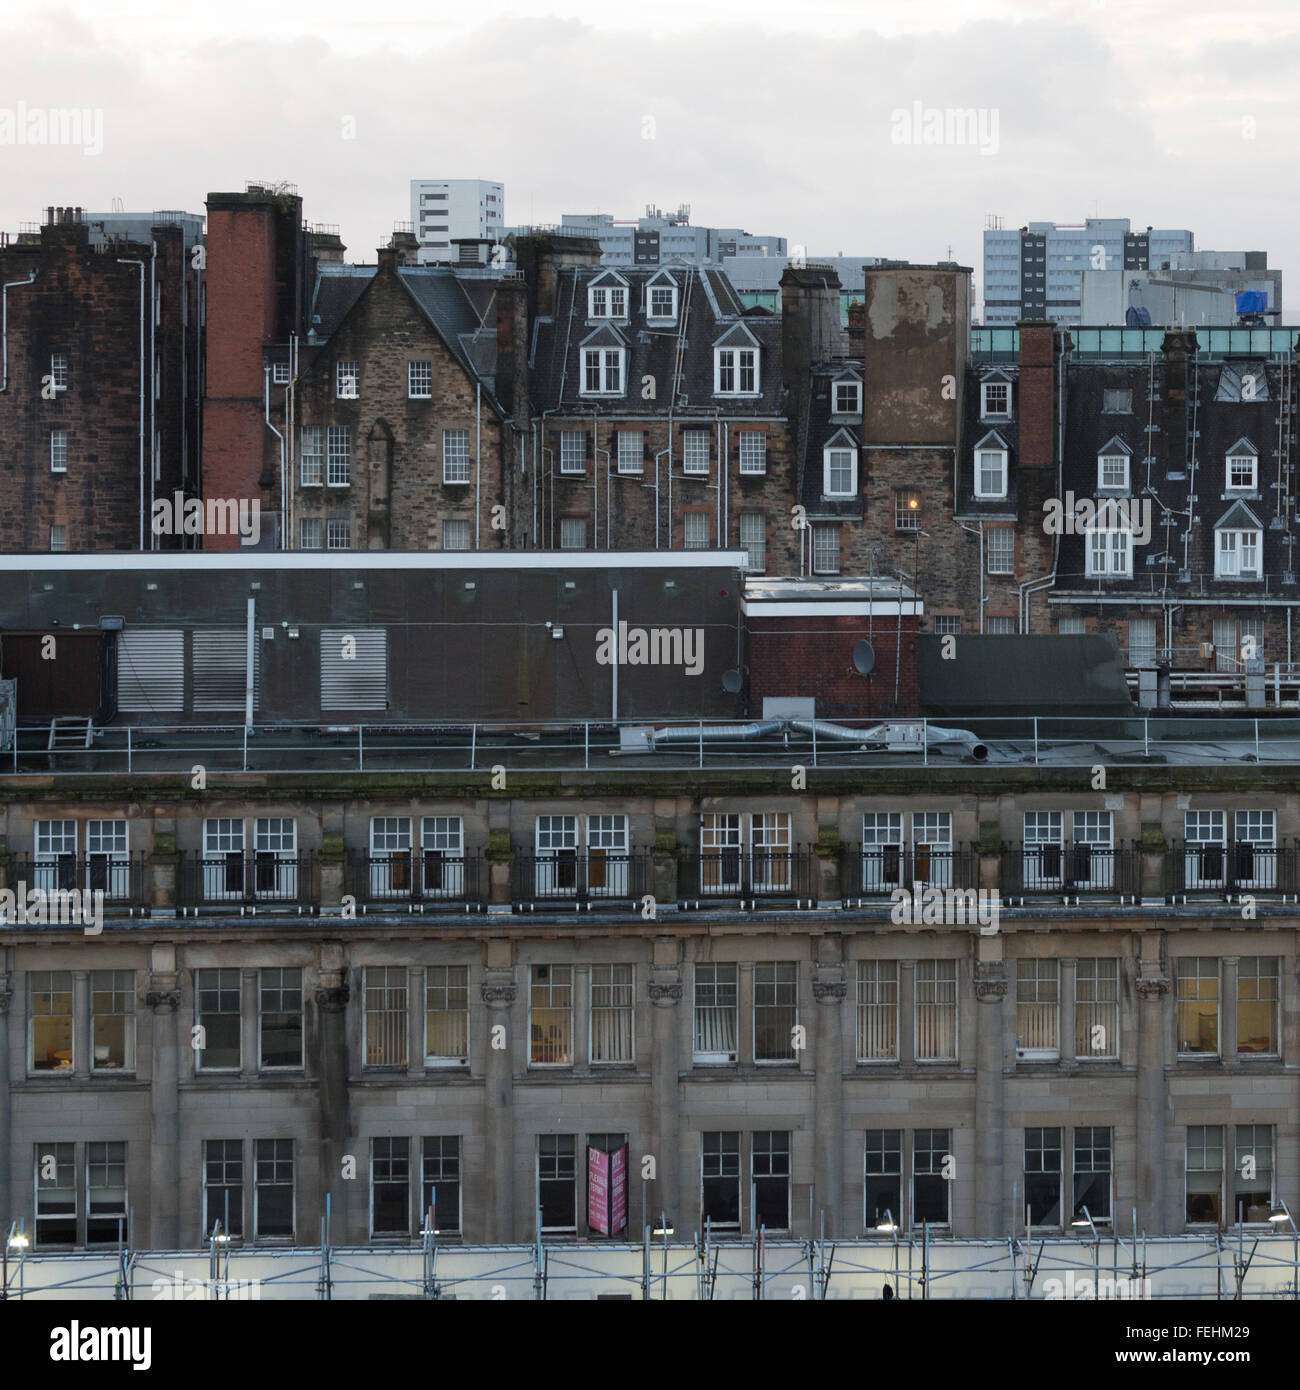 Glasgow city centre buildings and rooftops - Stock Image